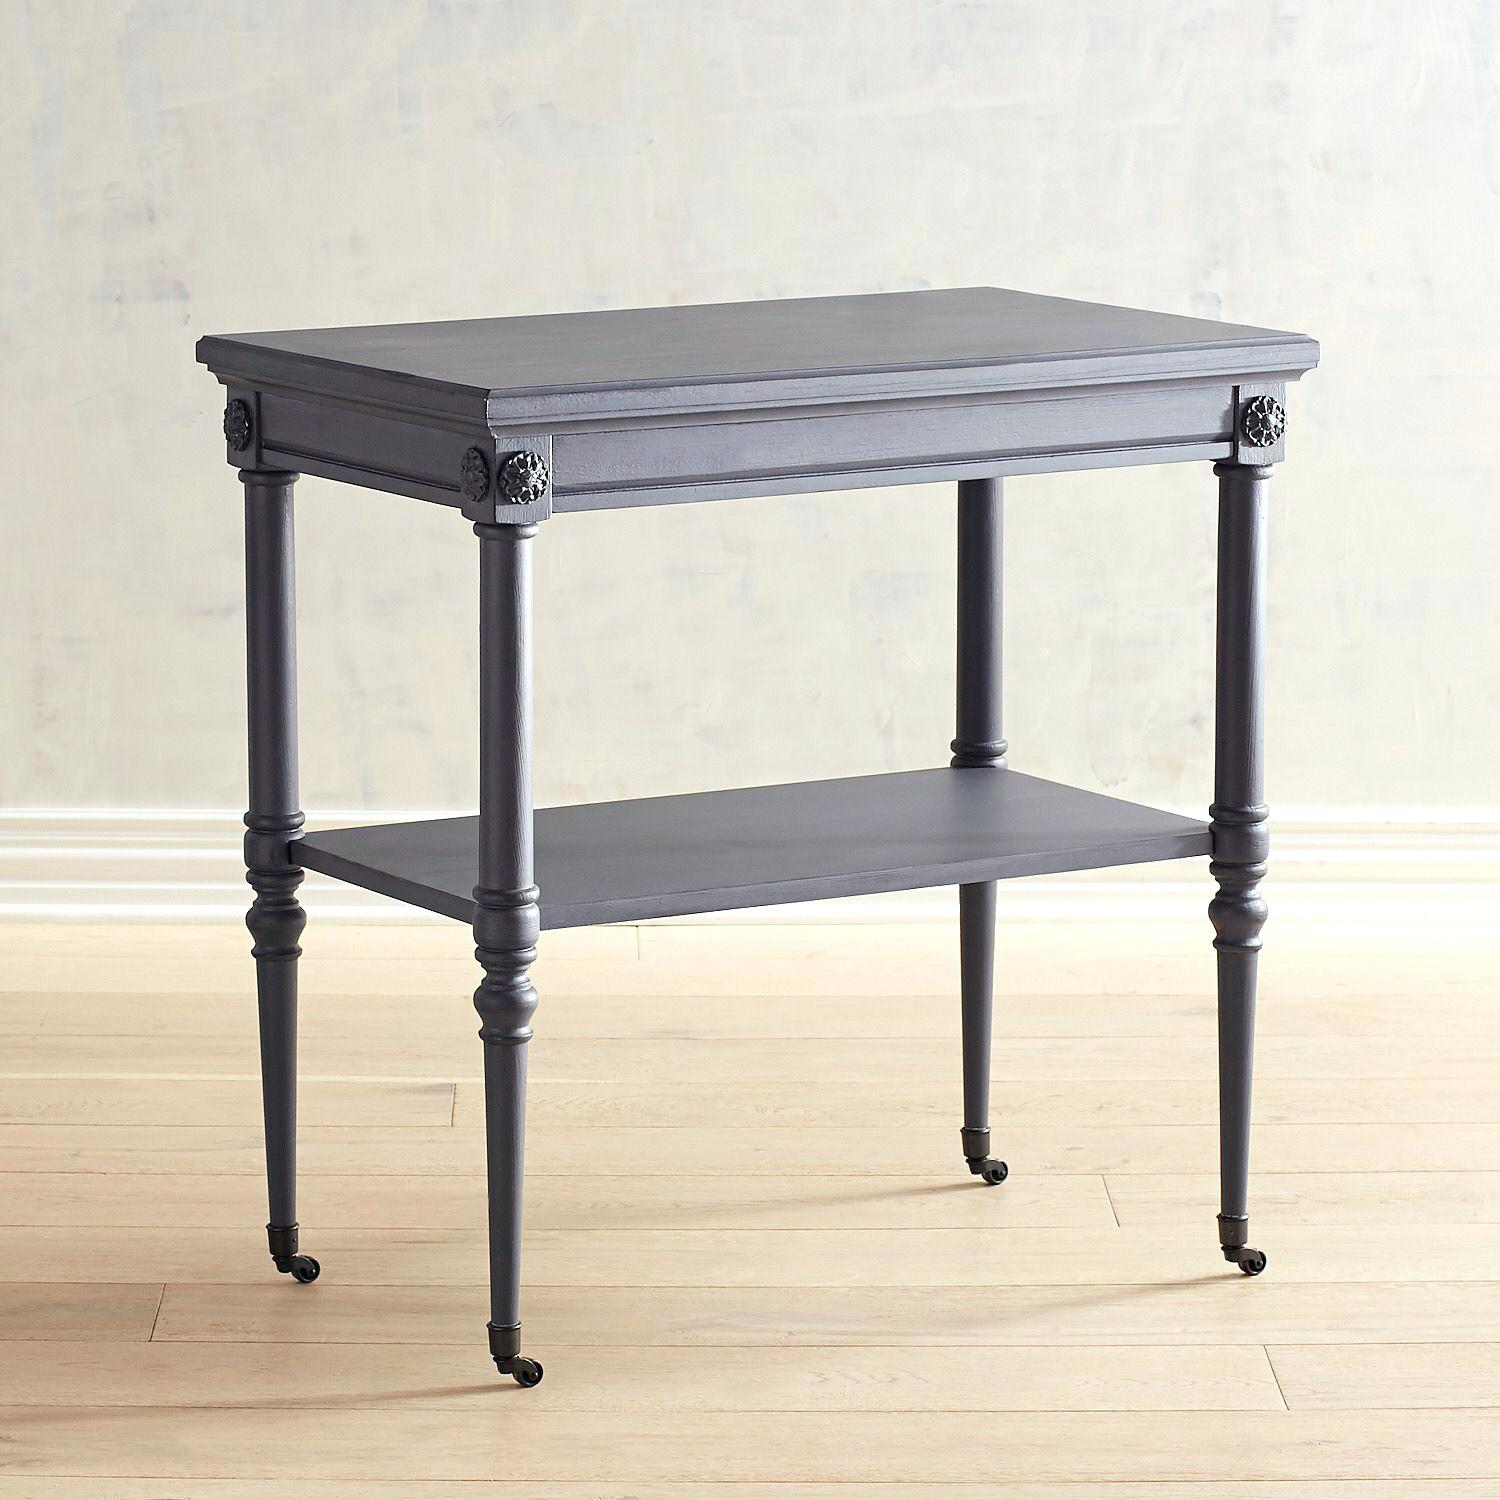 pier one accent tables west elm end table black small buffet decorative pieces for dining vienna furniture inexpensive sofas wood top coffee sideboard mirrored bedside with